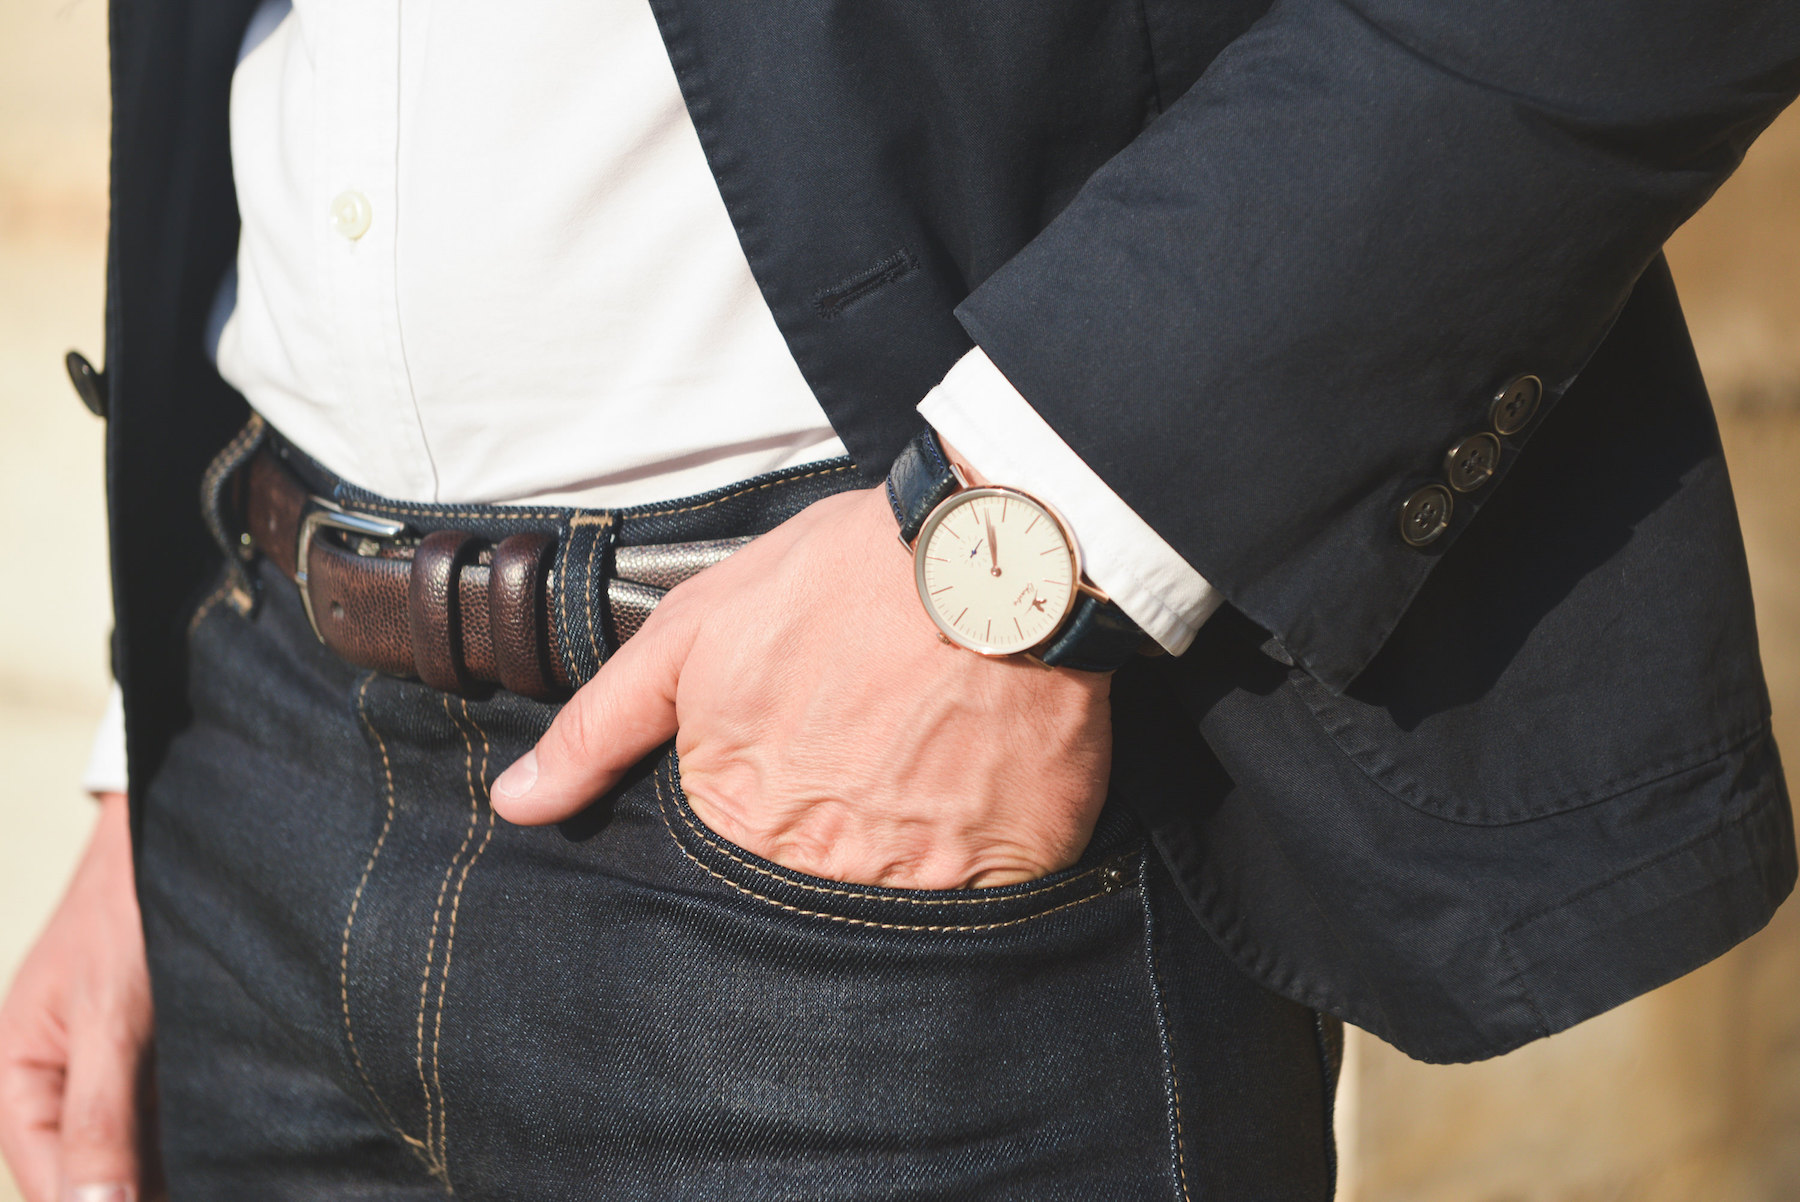 charlie watch portée homme